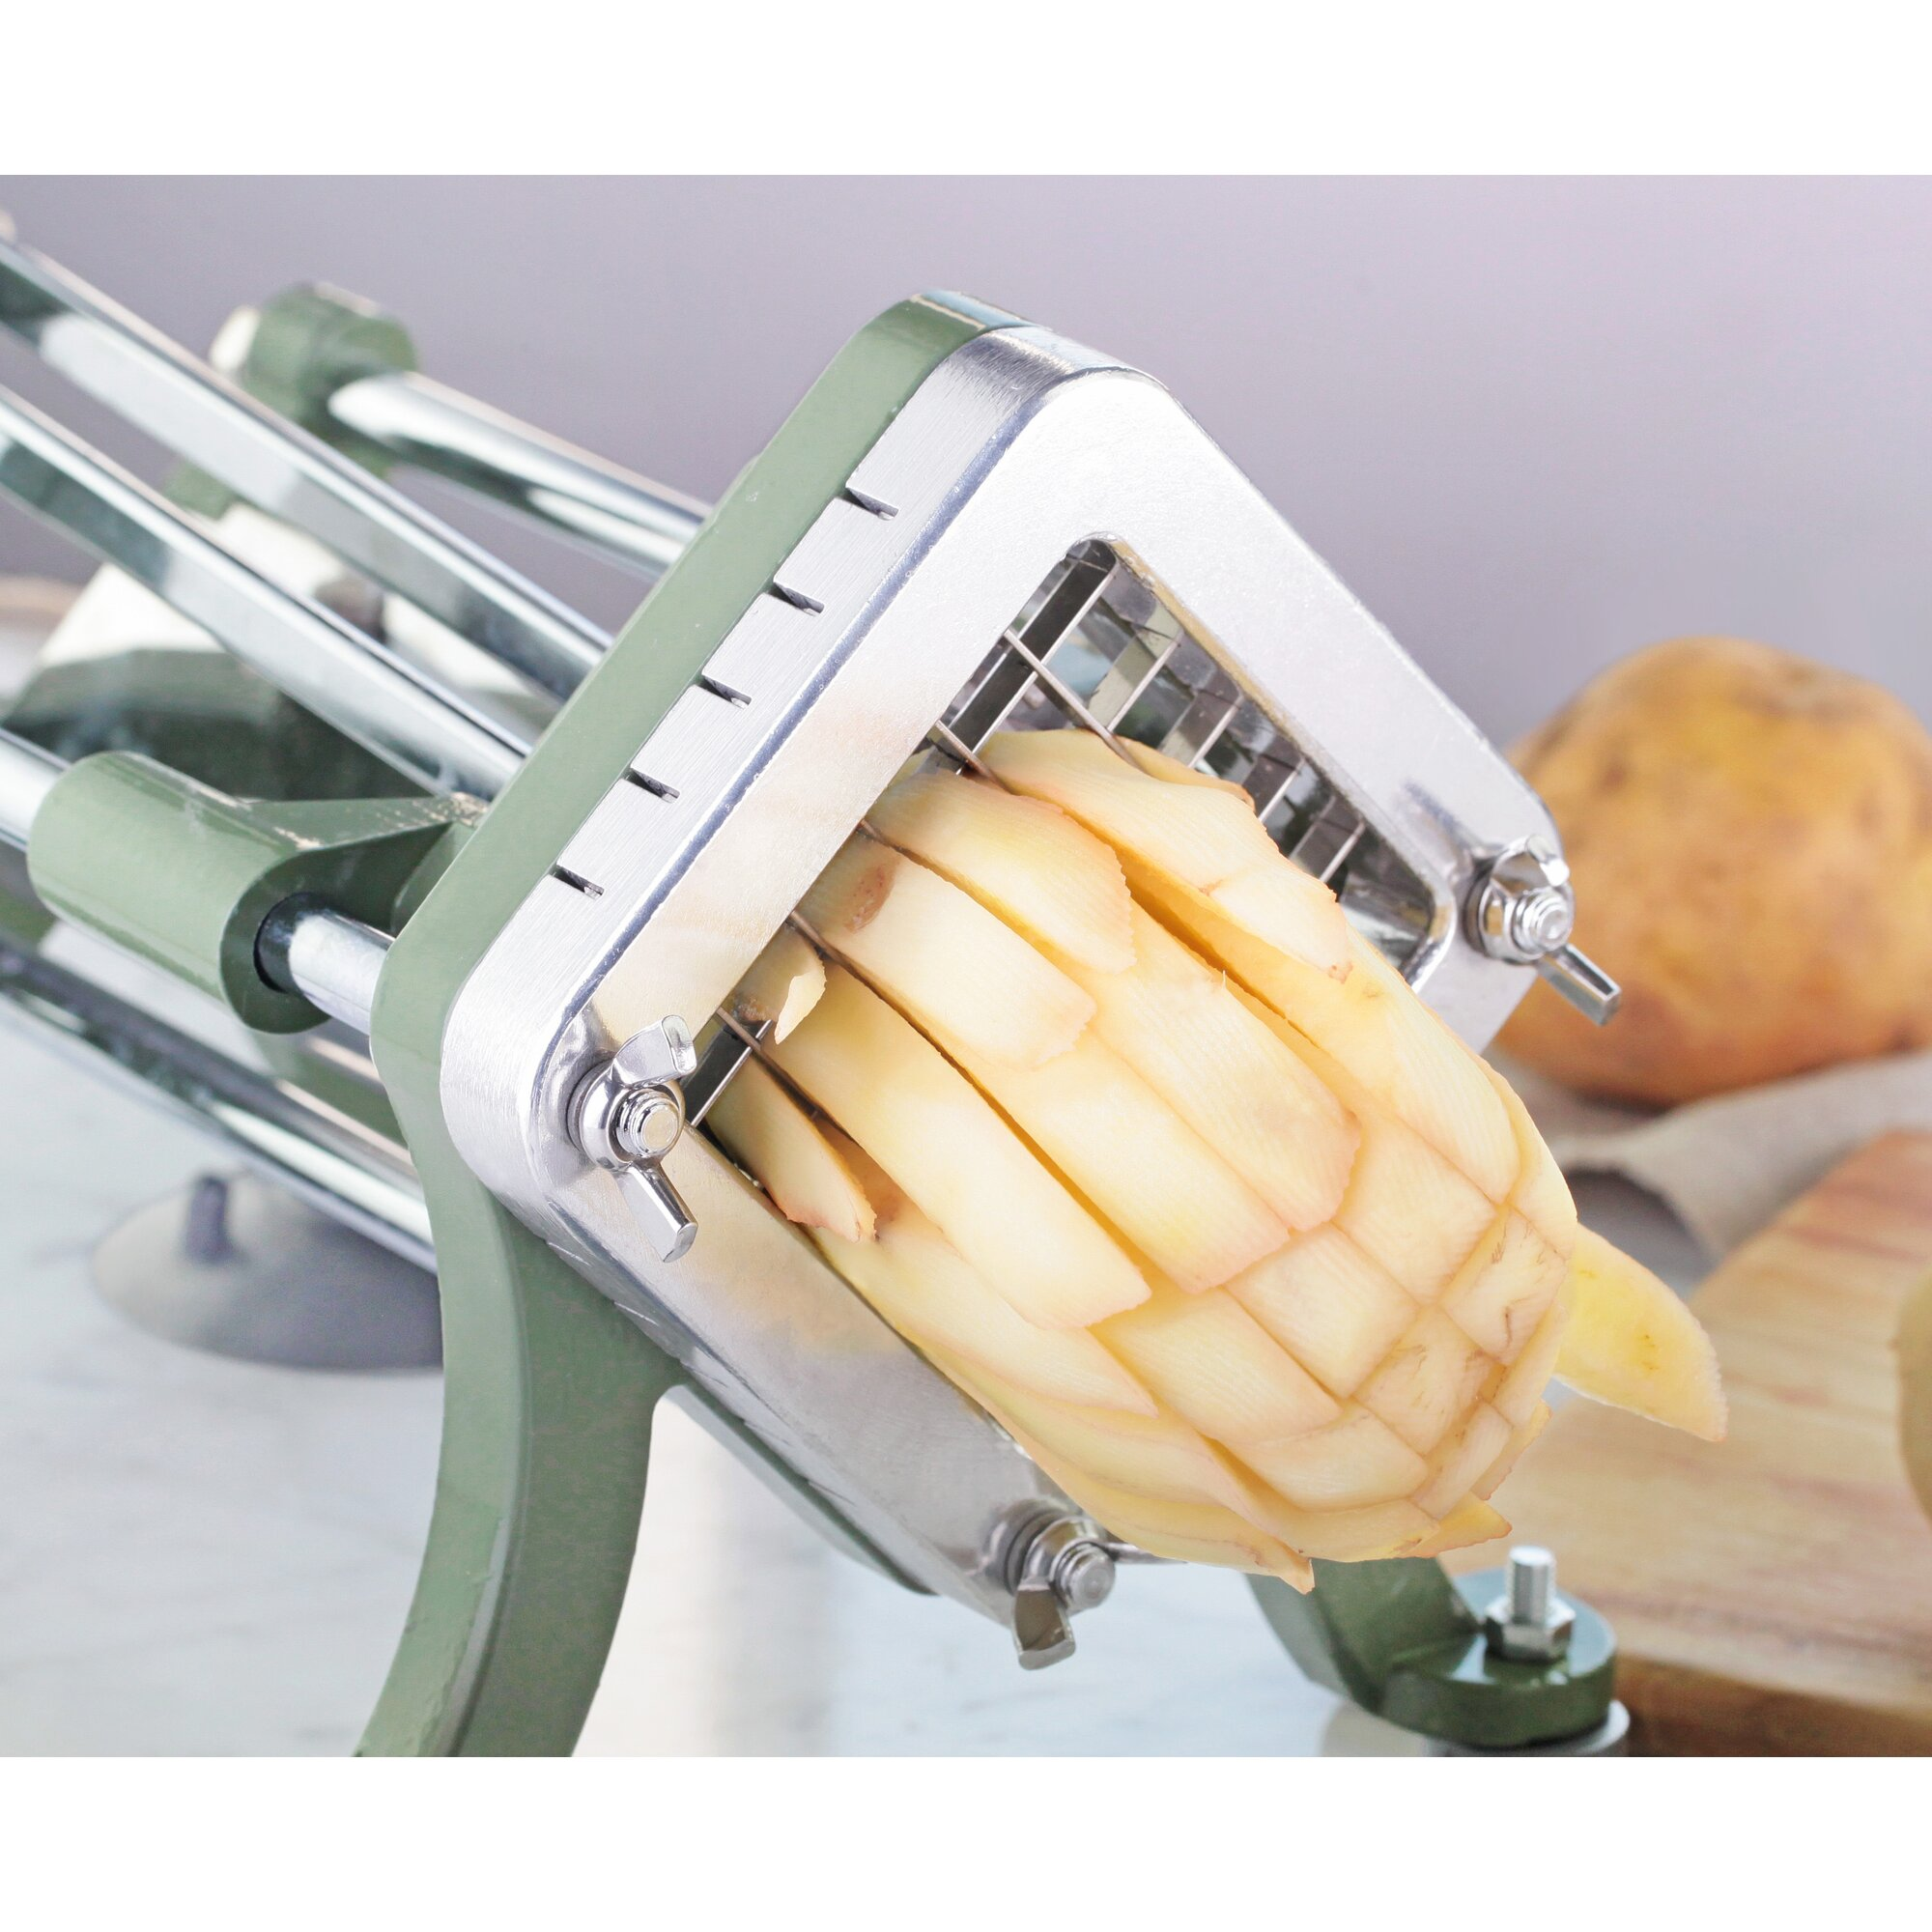 New Star Foodservice Commercial Grade French Fry Cutter